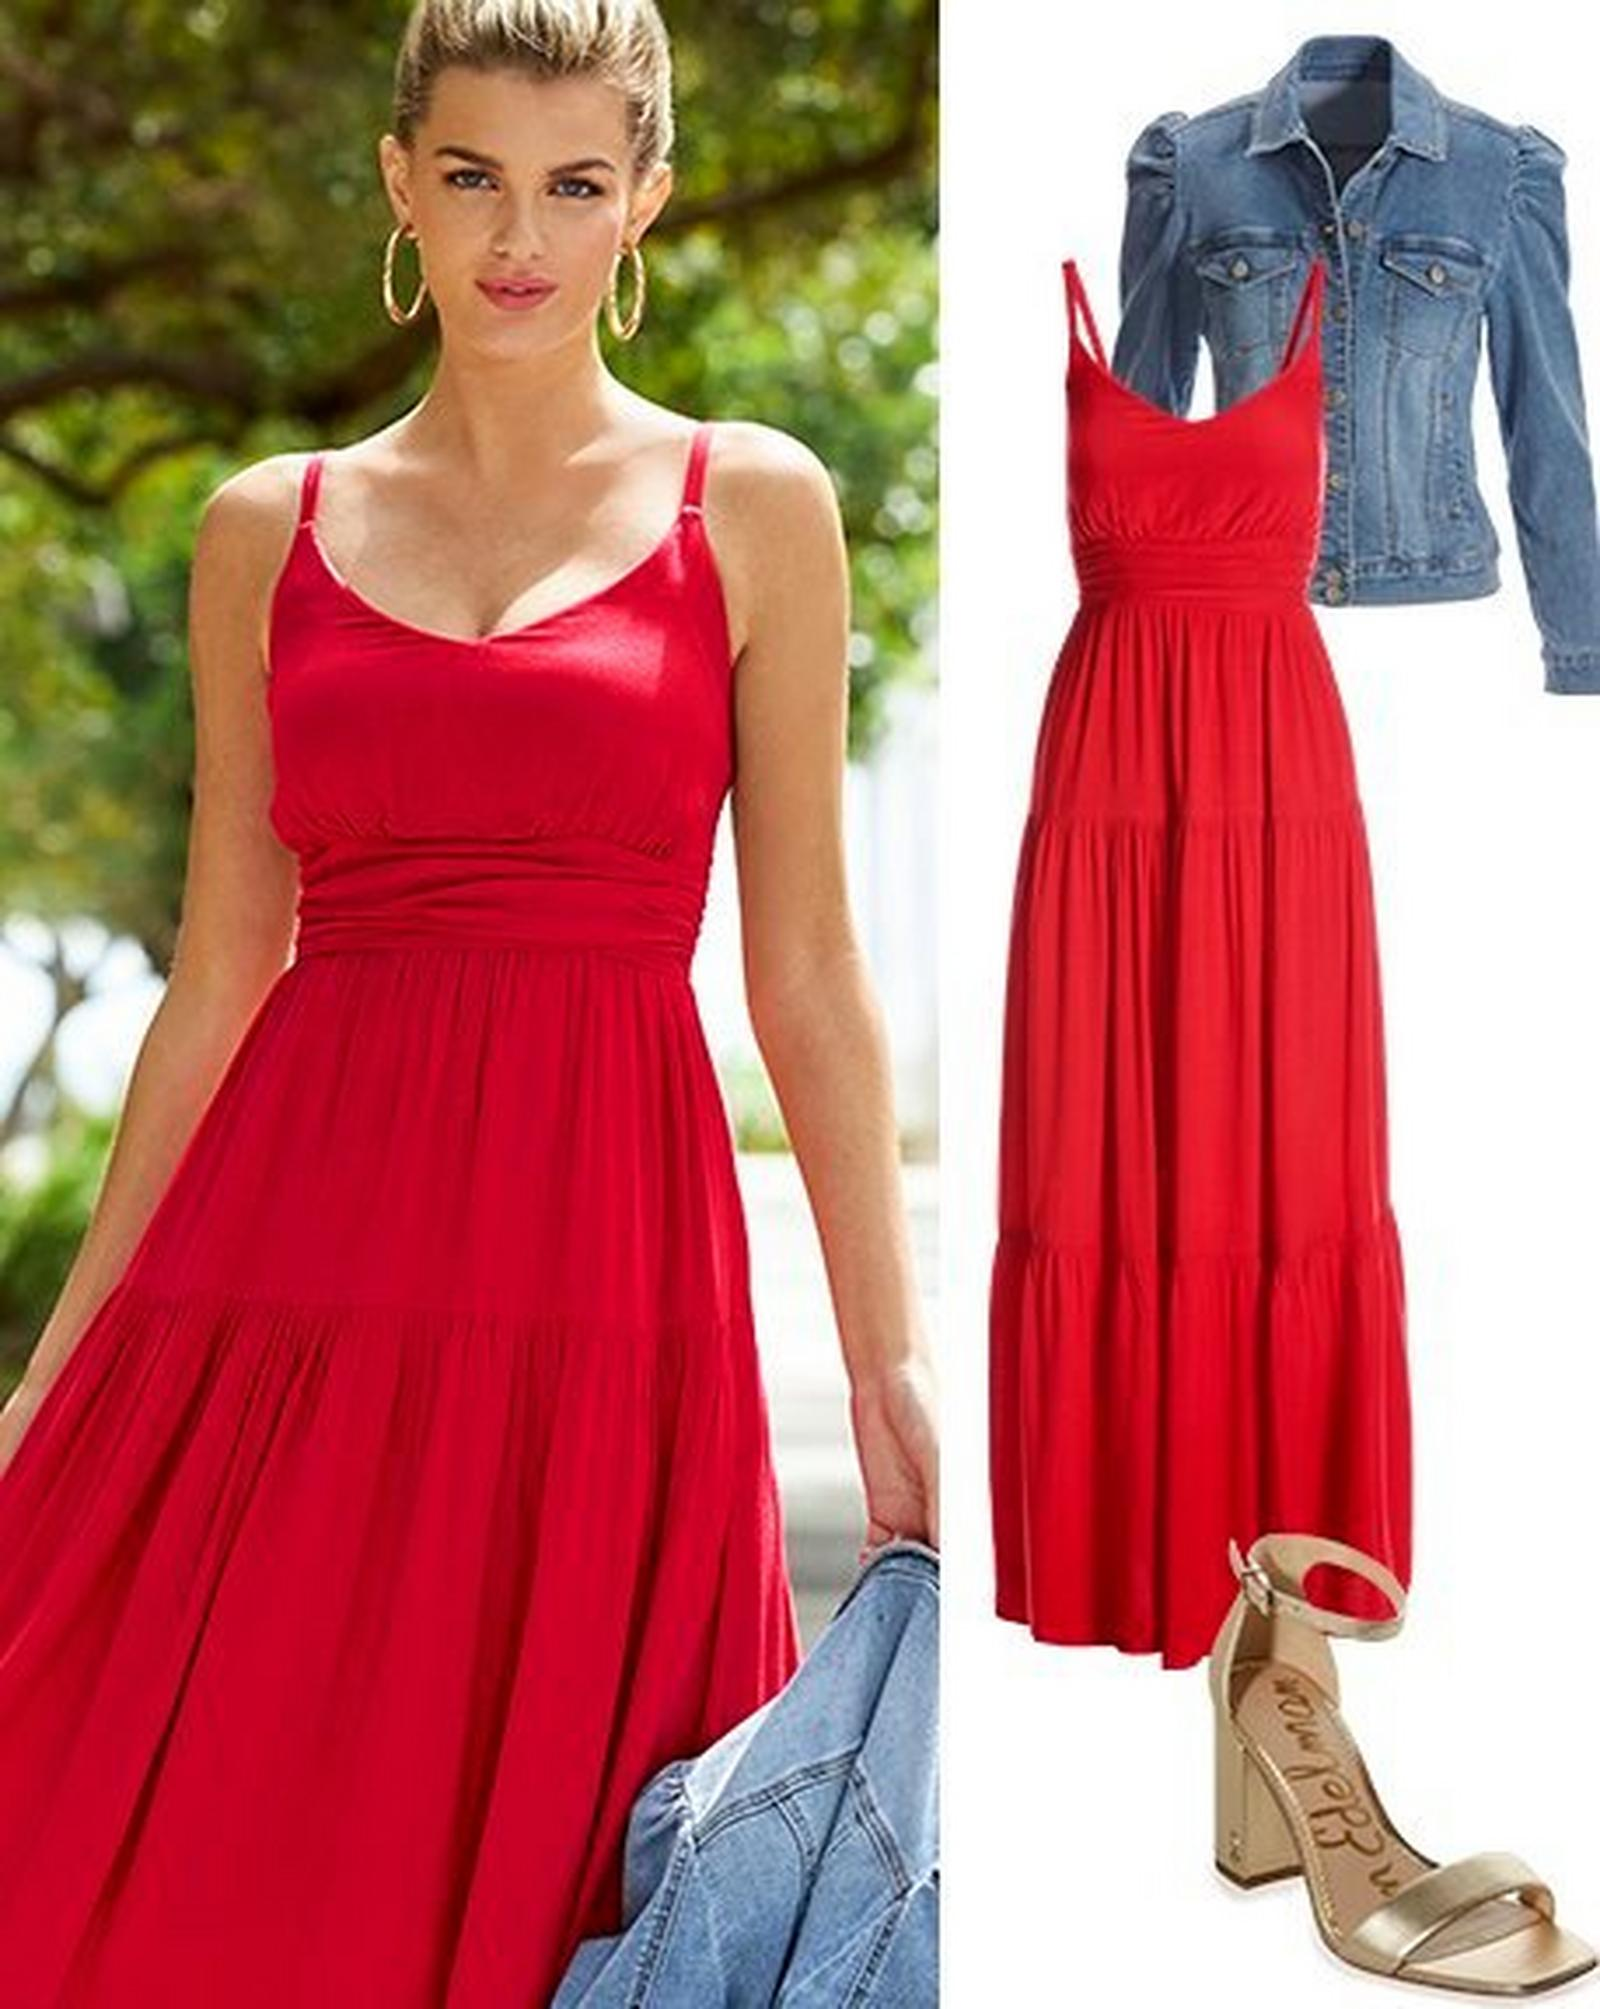 left model wearing a red sleeveless tiered maxi dress, gold earrings, and holding a denim jacket. right panel: red sleeveless tiered maxi dress, puff-sleeve denim jacket, gold single strap heels.